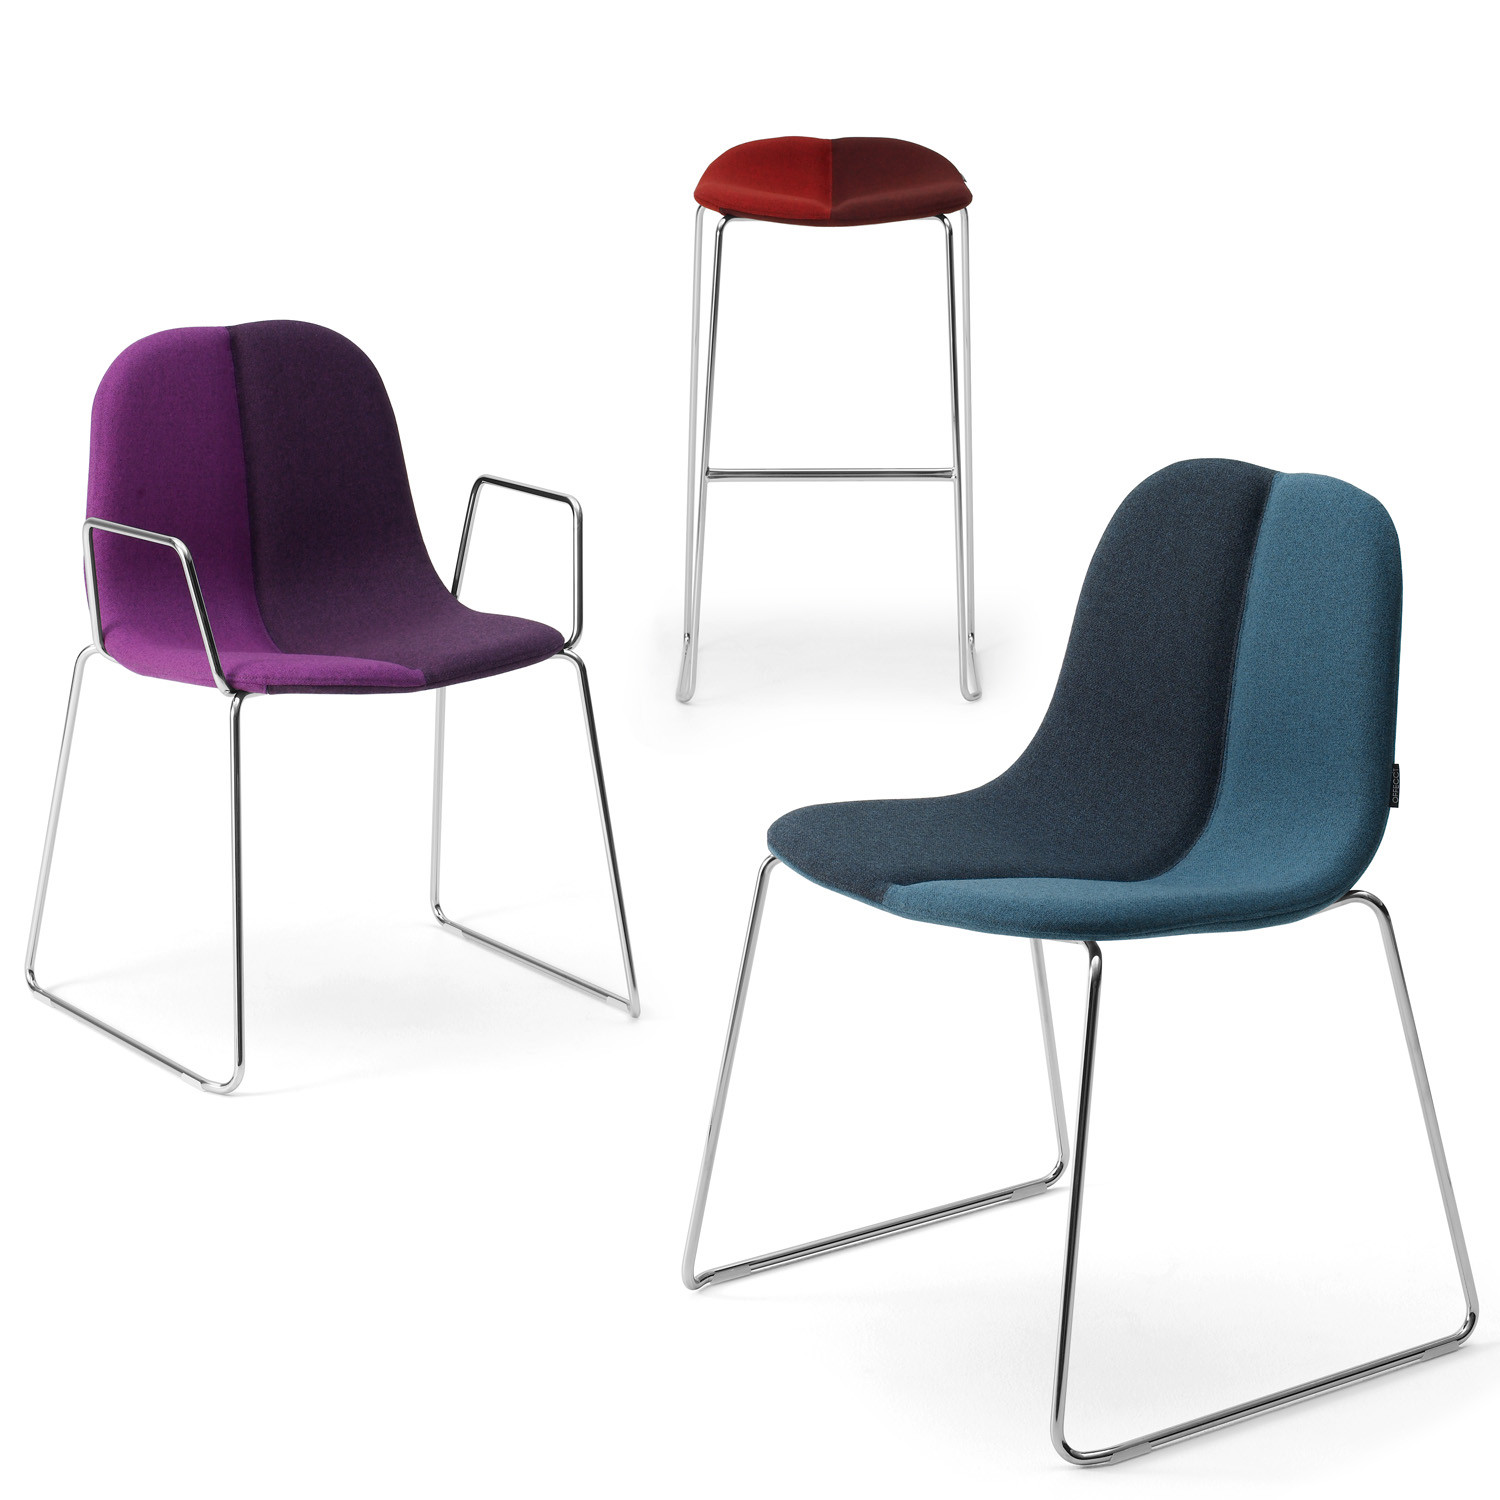 Duo Seating by Offecct